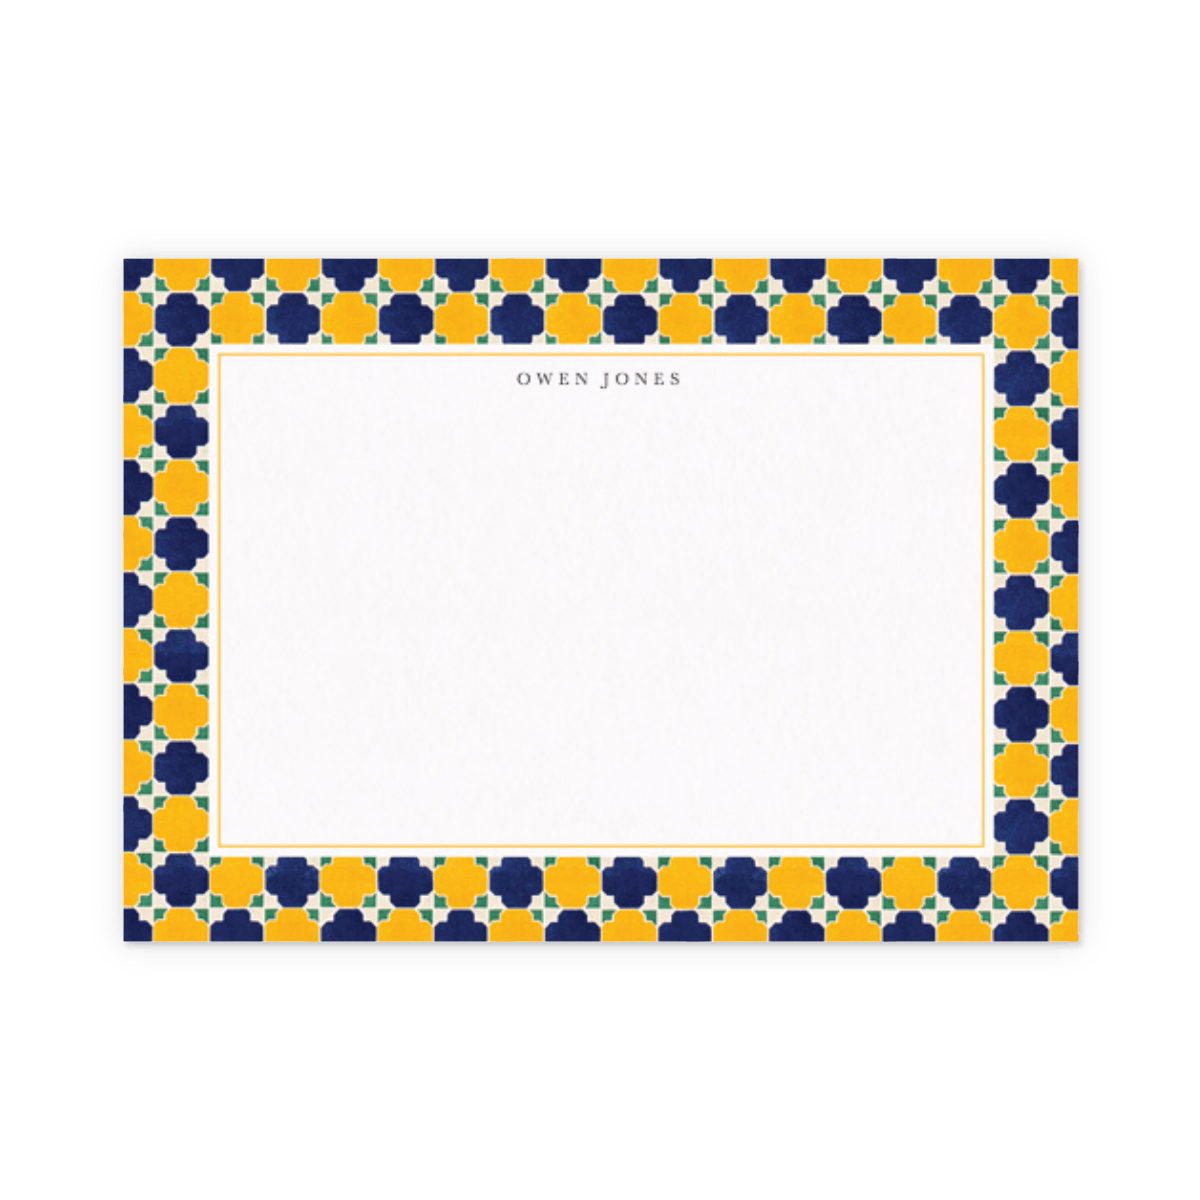 Https%3a%2f%2fwww.papier.com%2fproduct image%2f15010%2f10%2fmoresque tiles 3995 front 1551296735.png?ixlib=rb 1.1